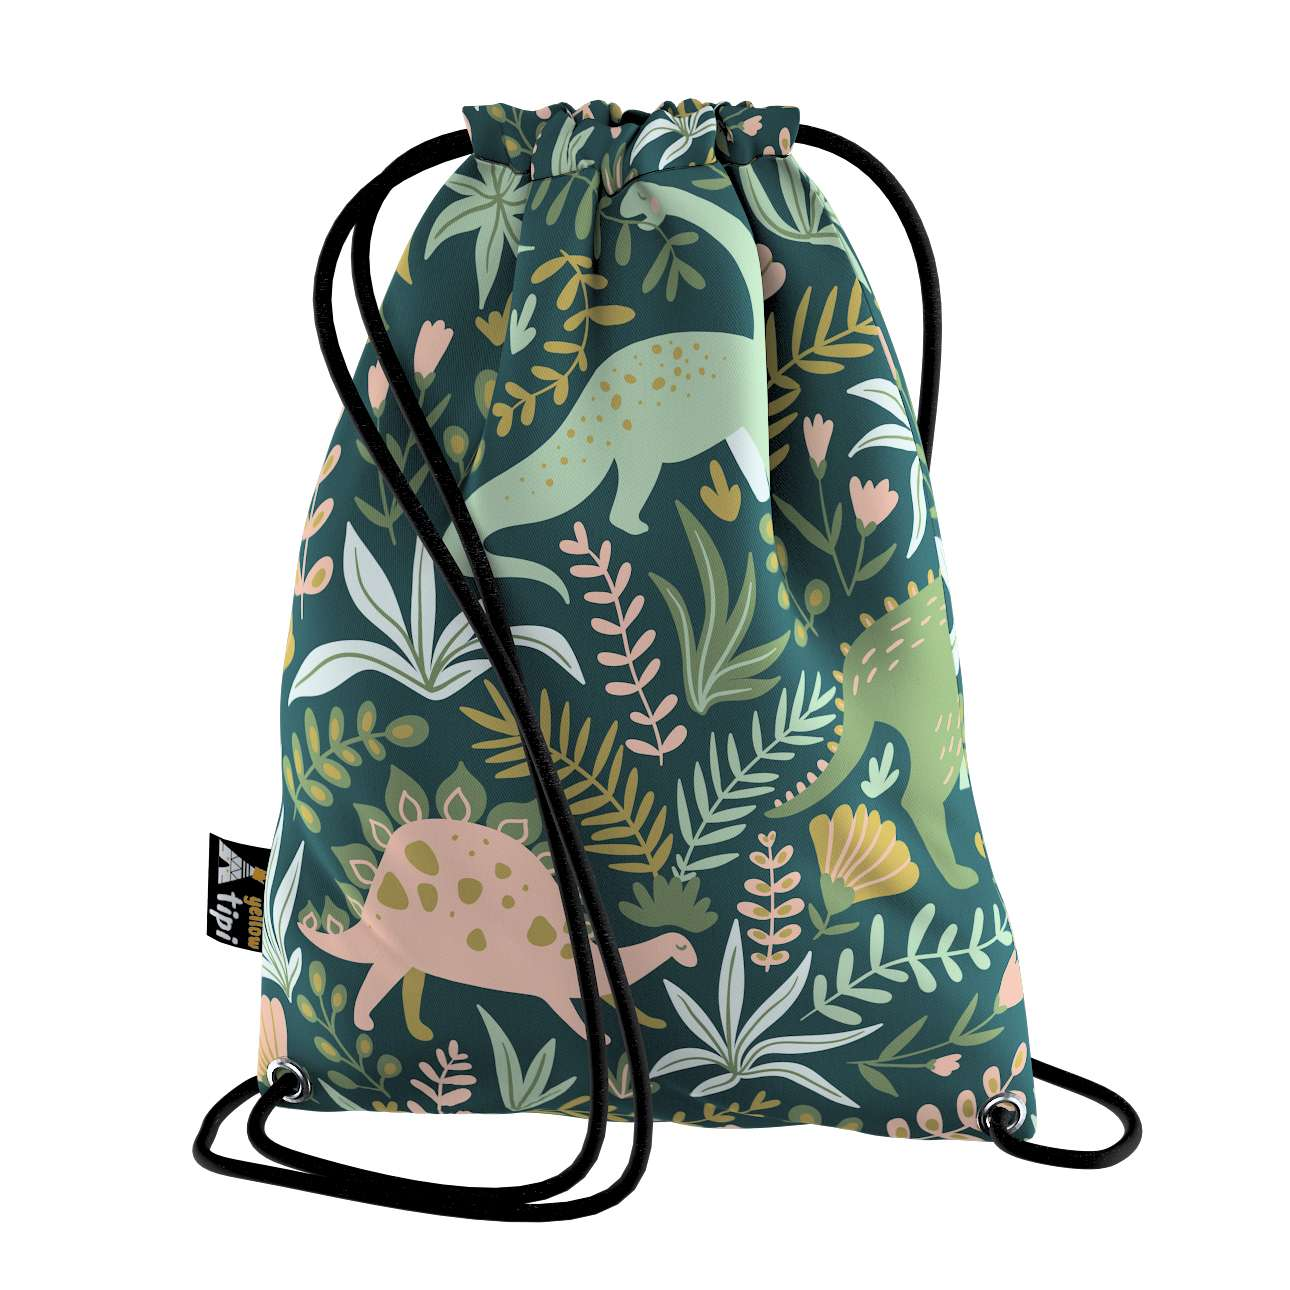 Rucksackbeutel Kiddy von der Kollektion Magic Collection, Stoff: 500-20